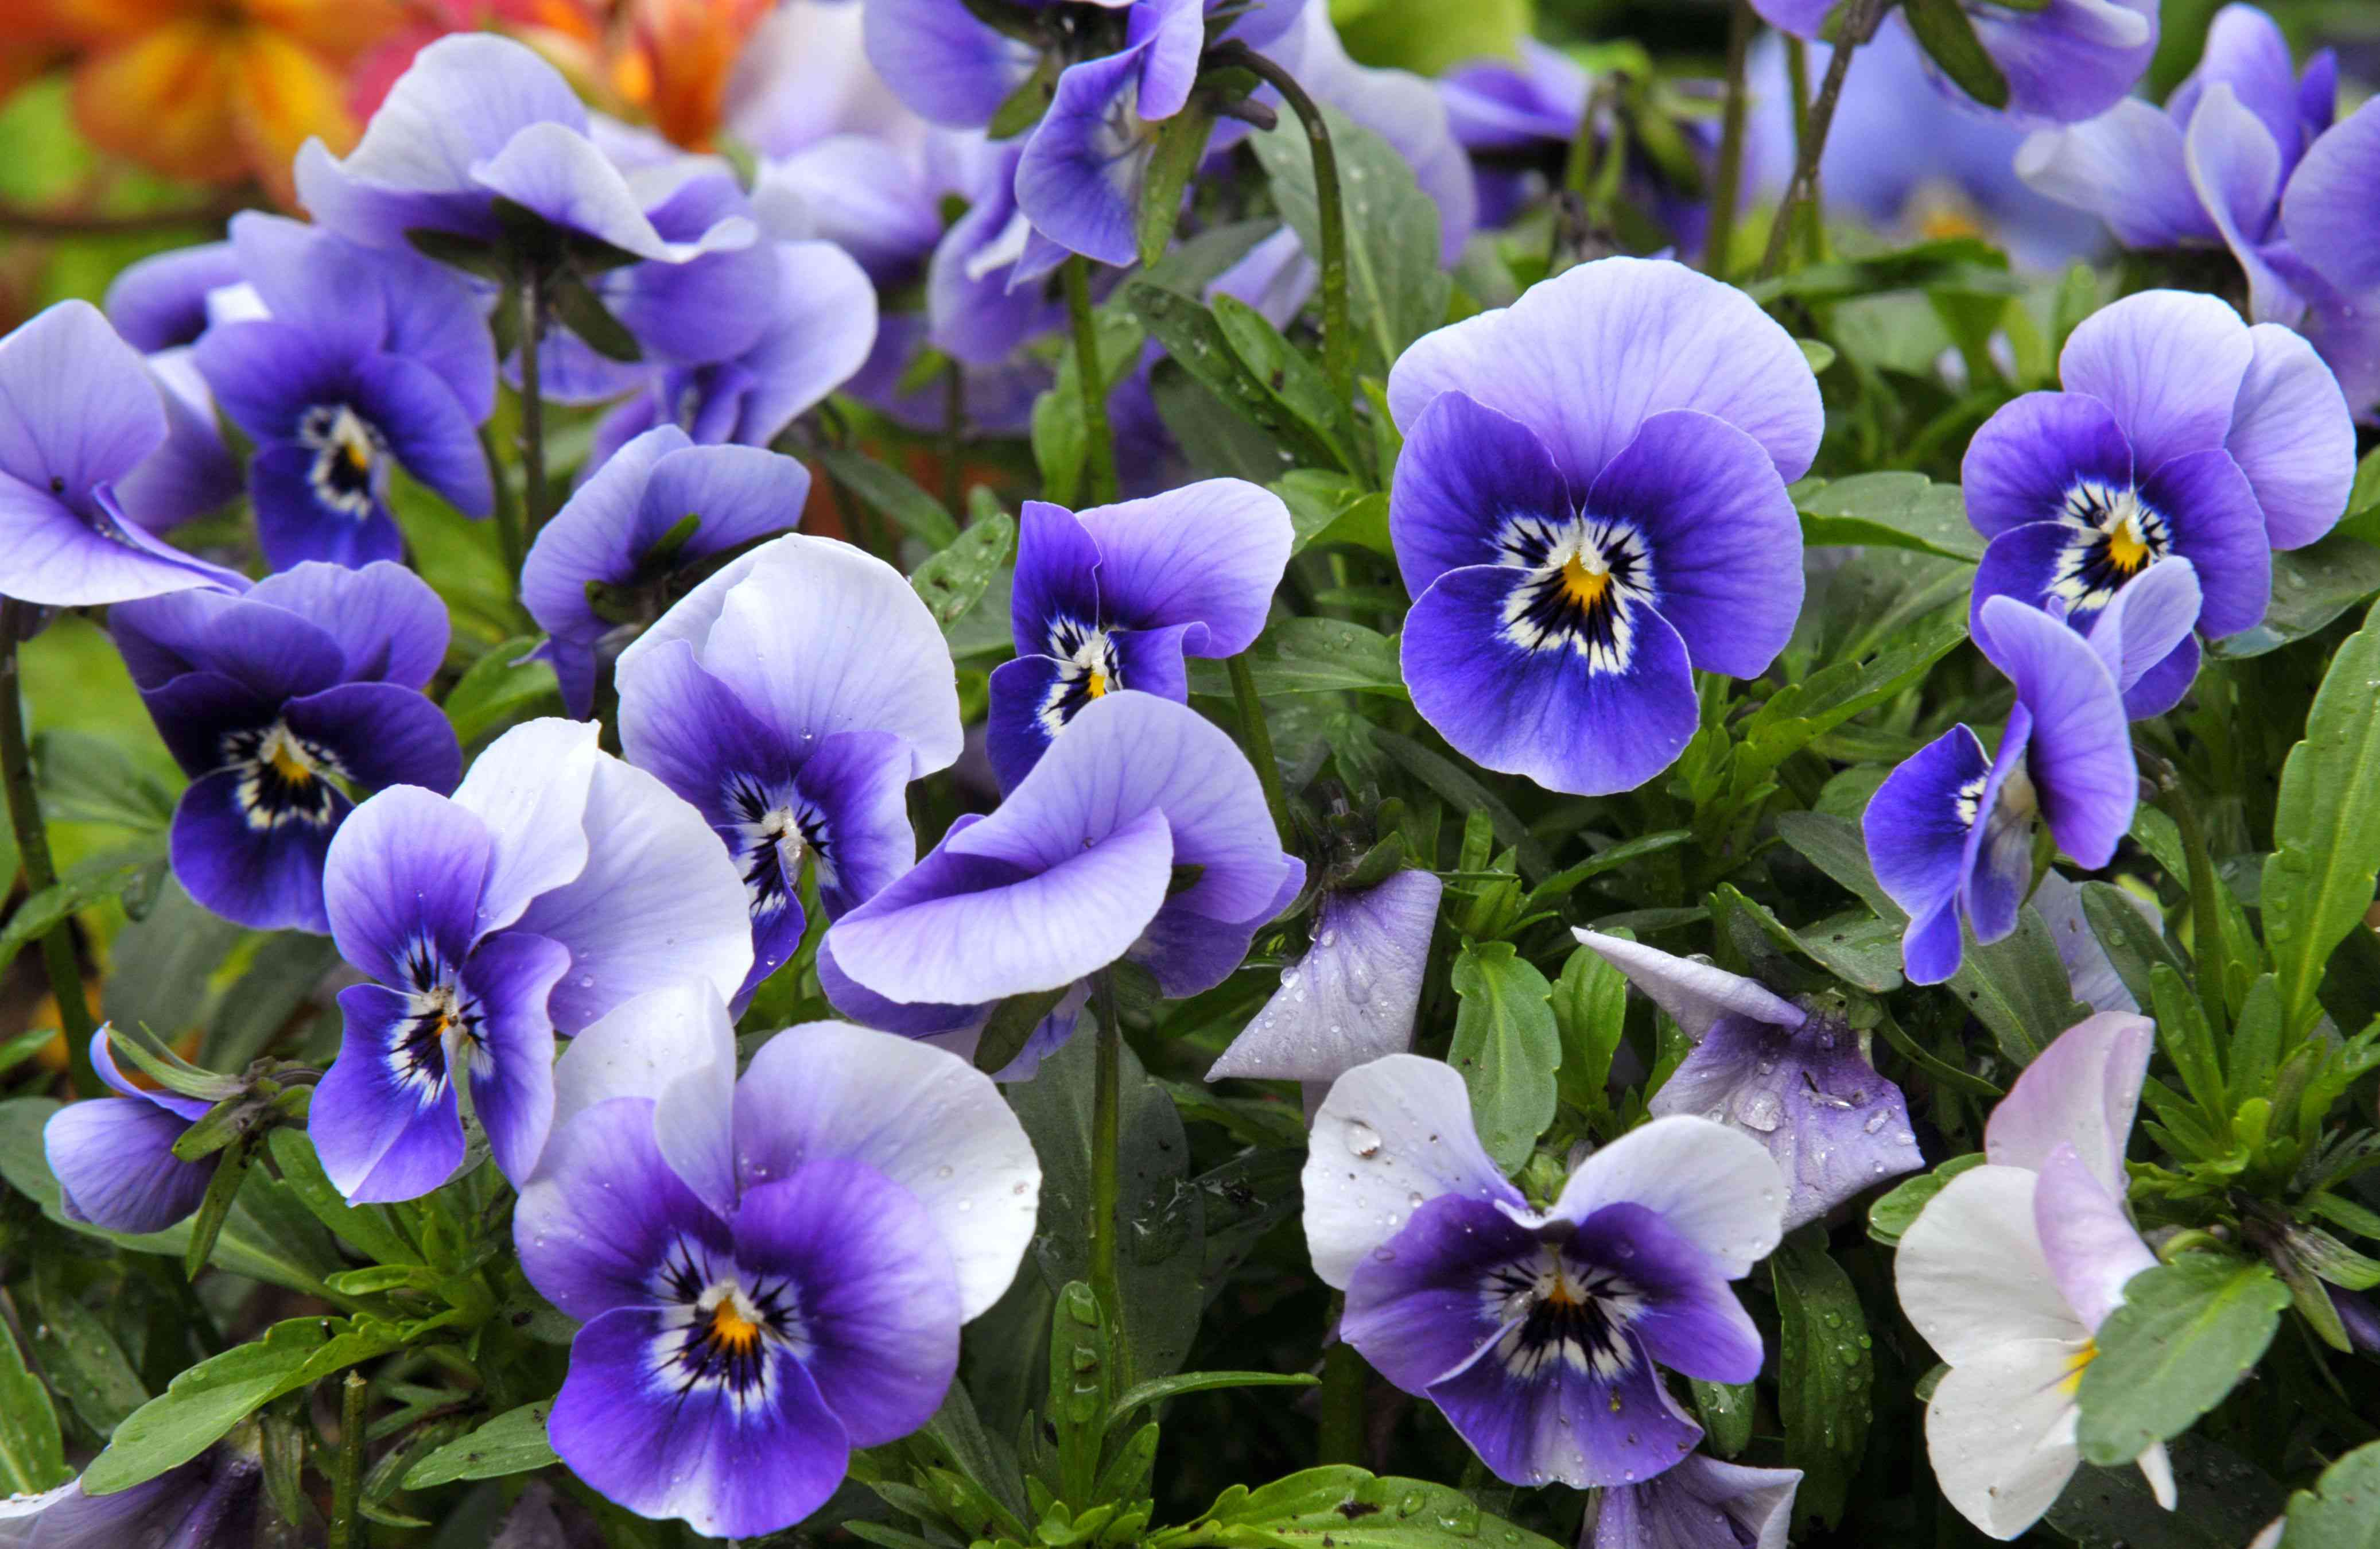 Pansy plant with purple and white flowers closeup